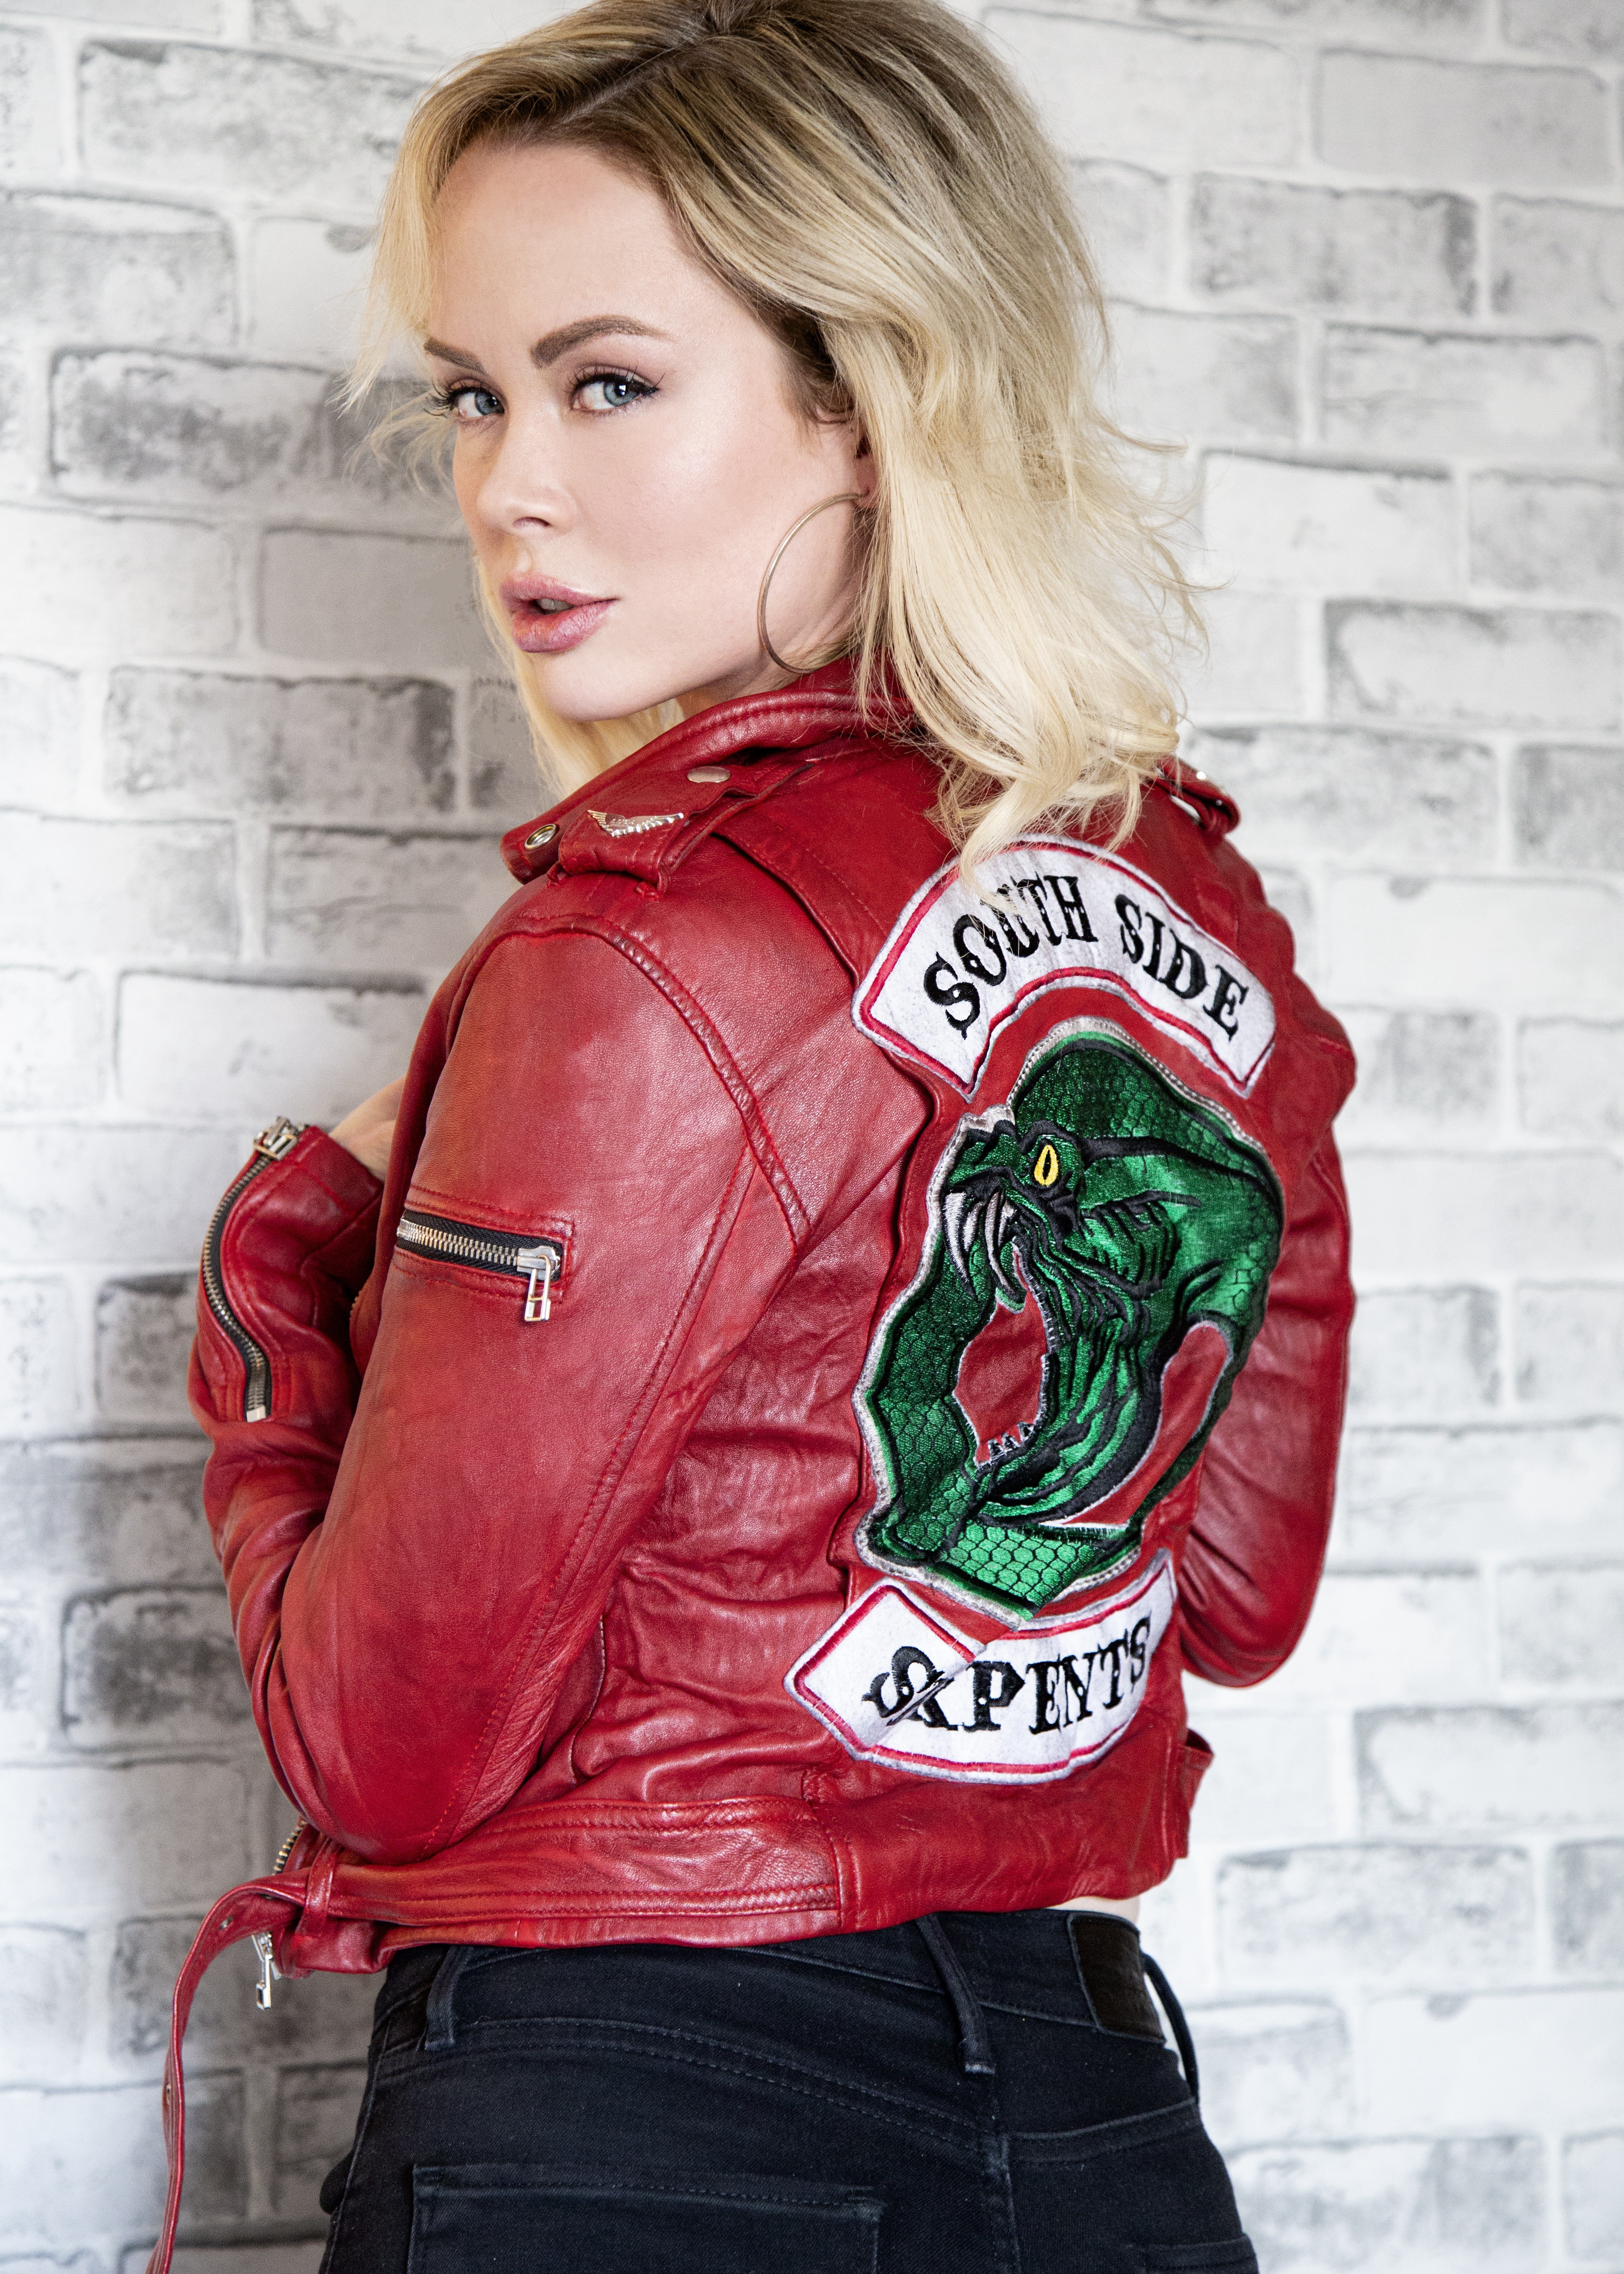 Riverdale Southside Serpents Jughead Cheryl Leather Jacket